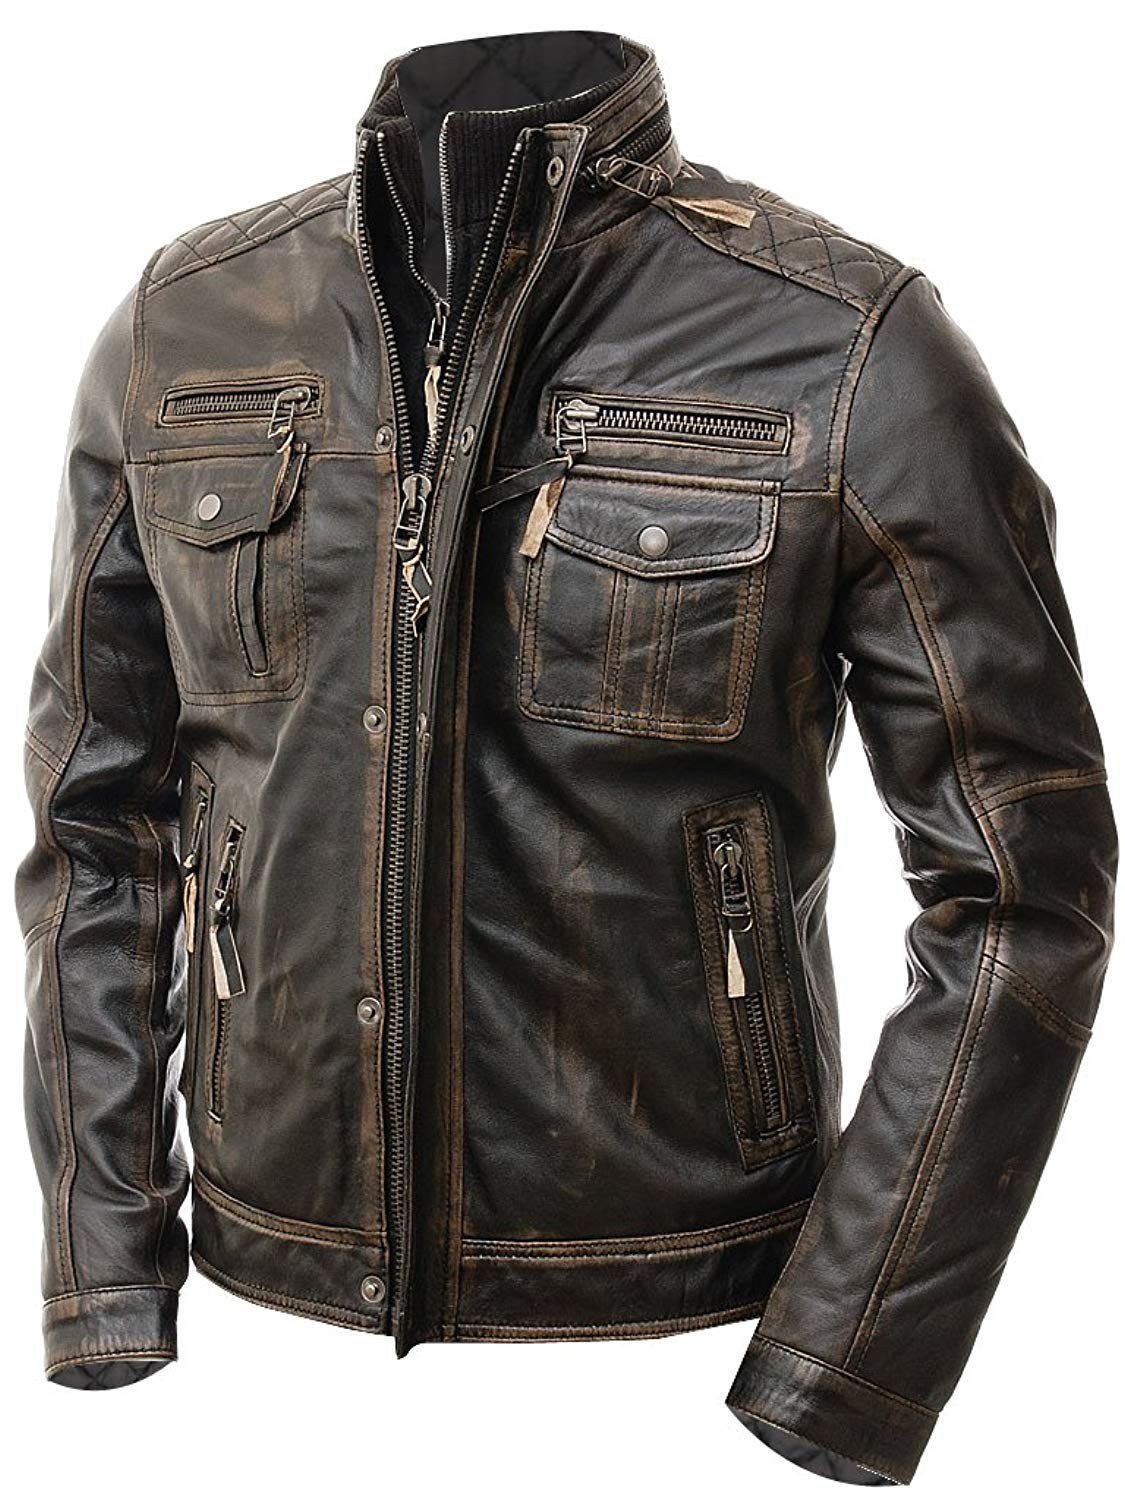 Abbraci Boys Motorcycle Real Leather Biker Style Jacket for Kids (11-12 Years, Brown)